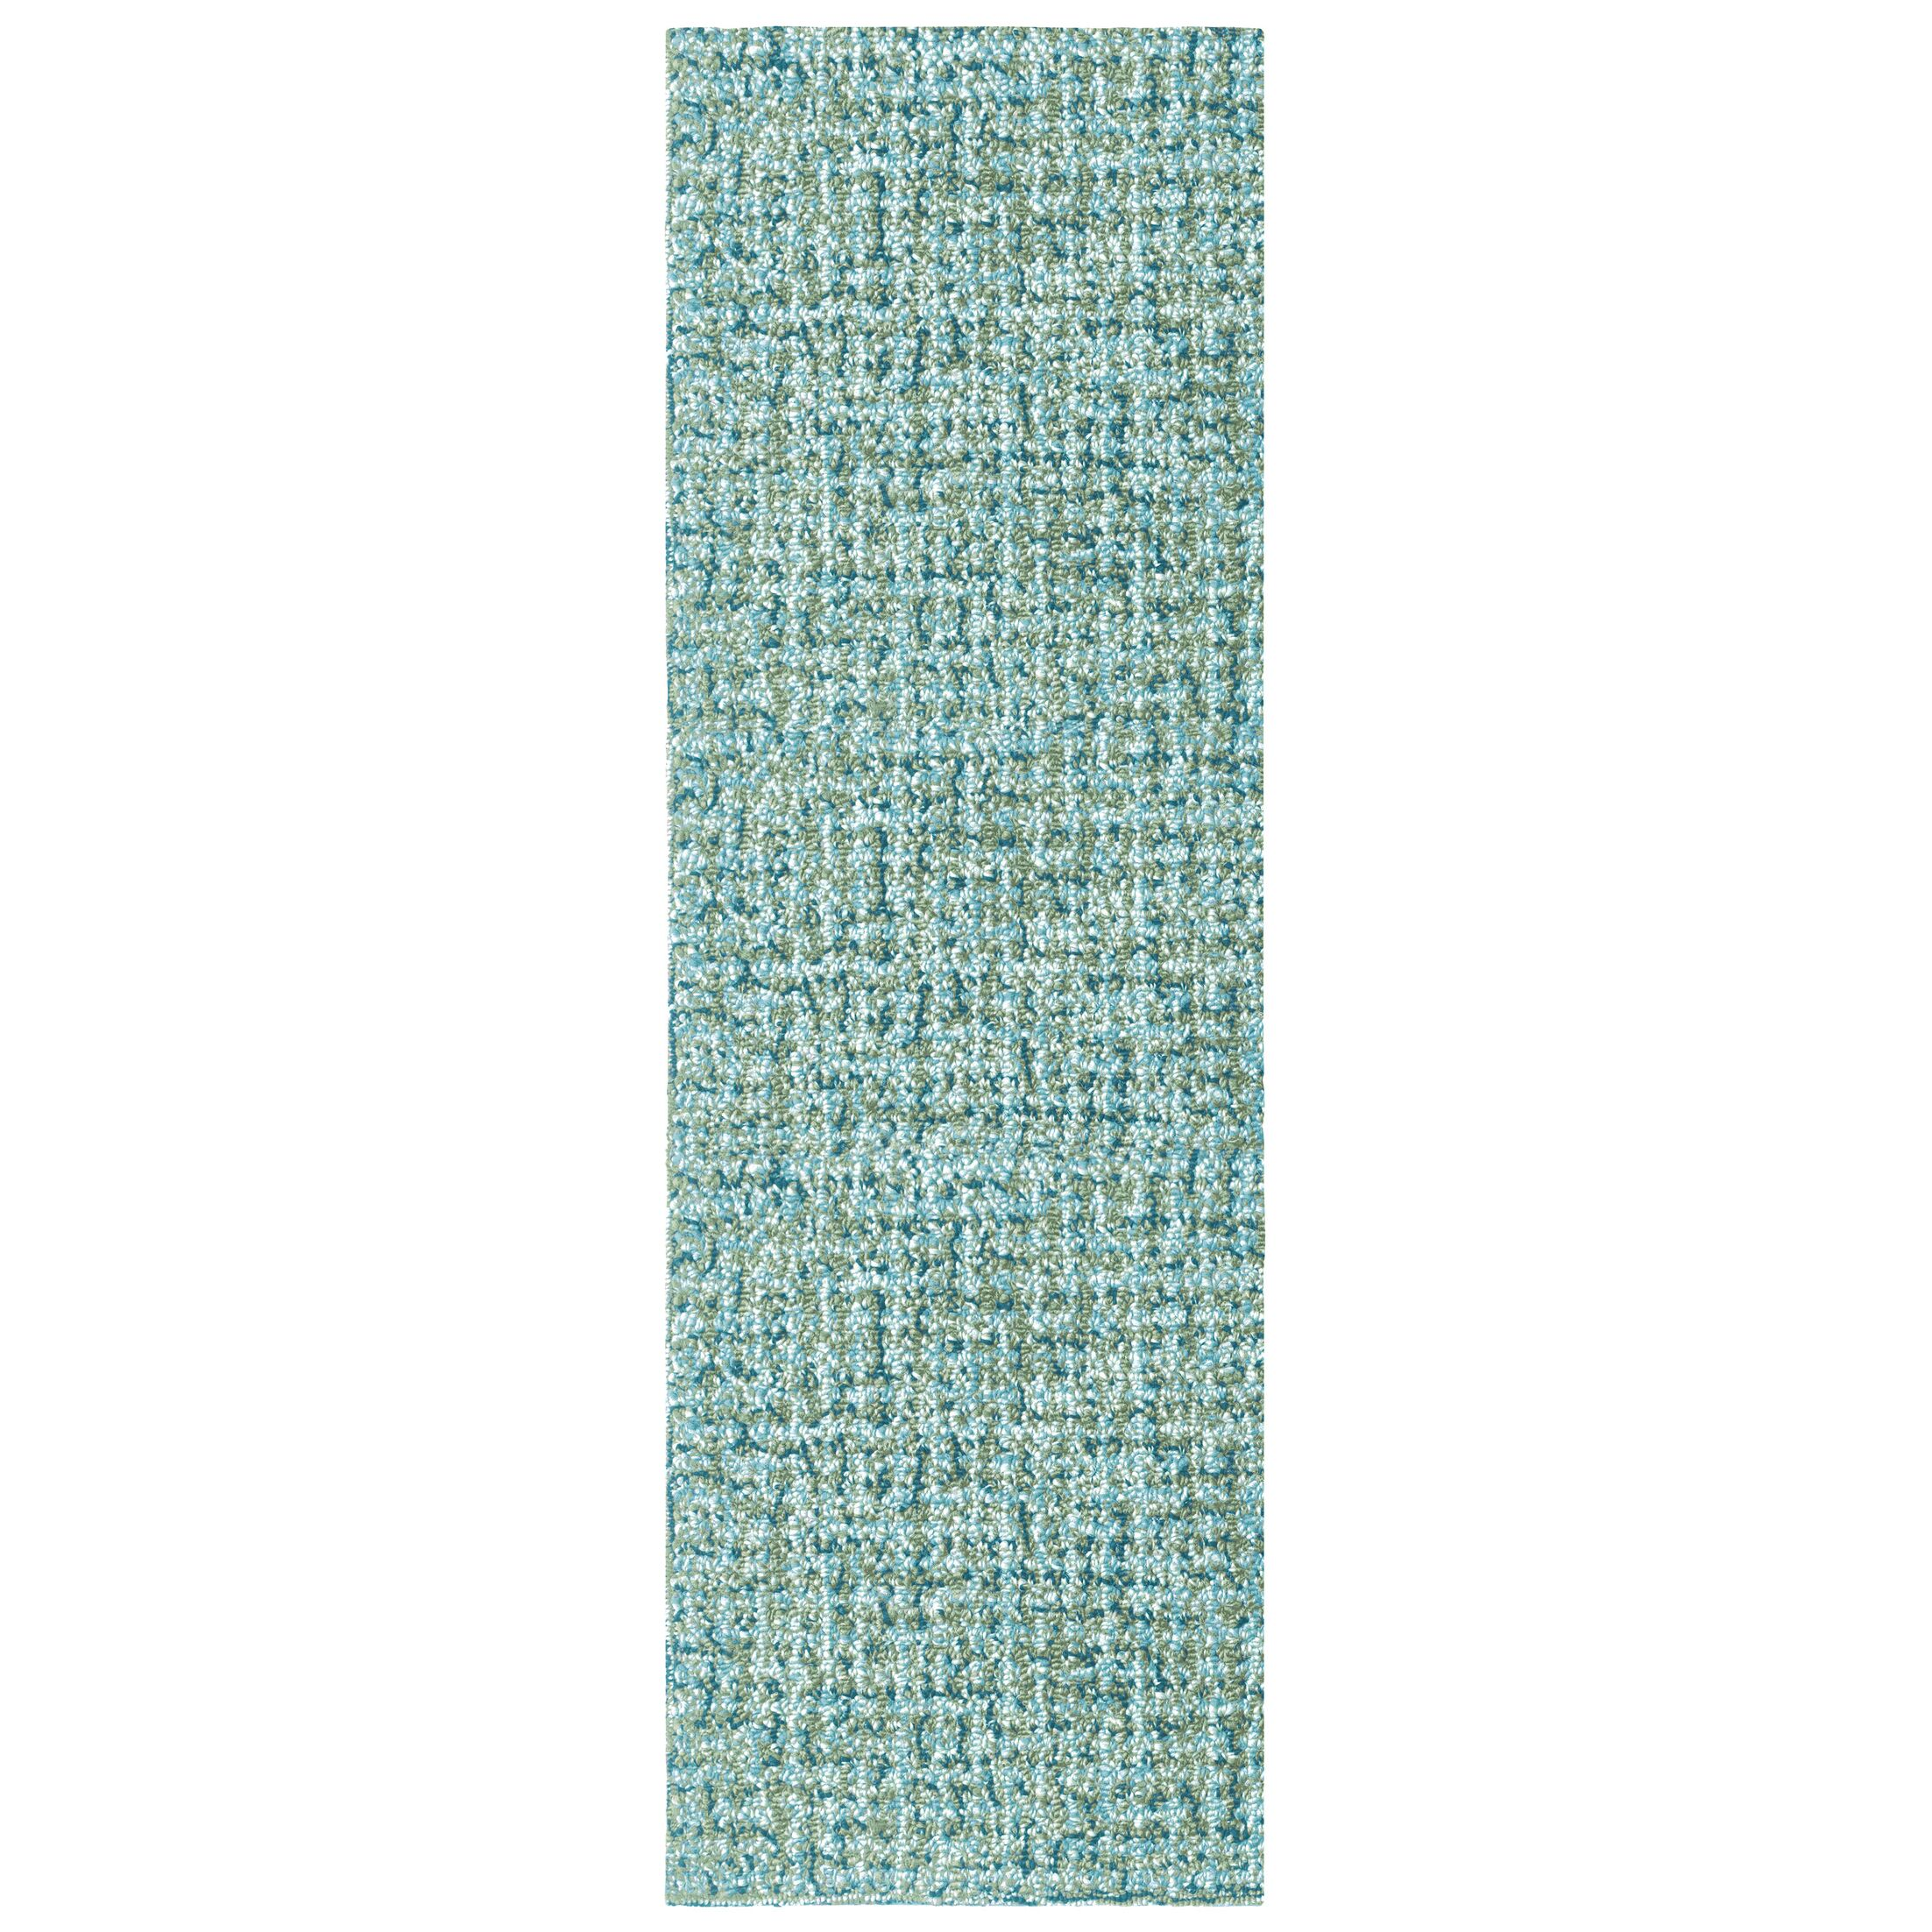 Donegal Hand Tufted Lake Area Rug Rug Size: Rectangle 2'6